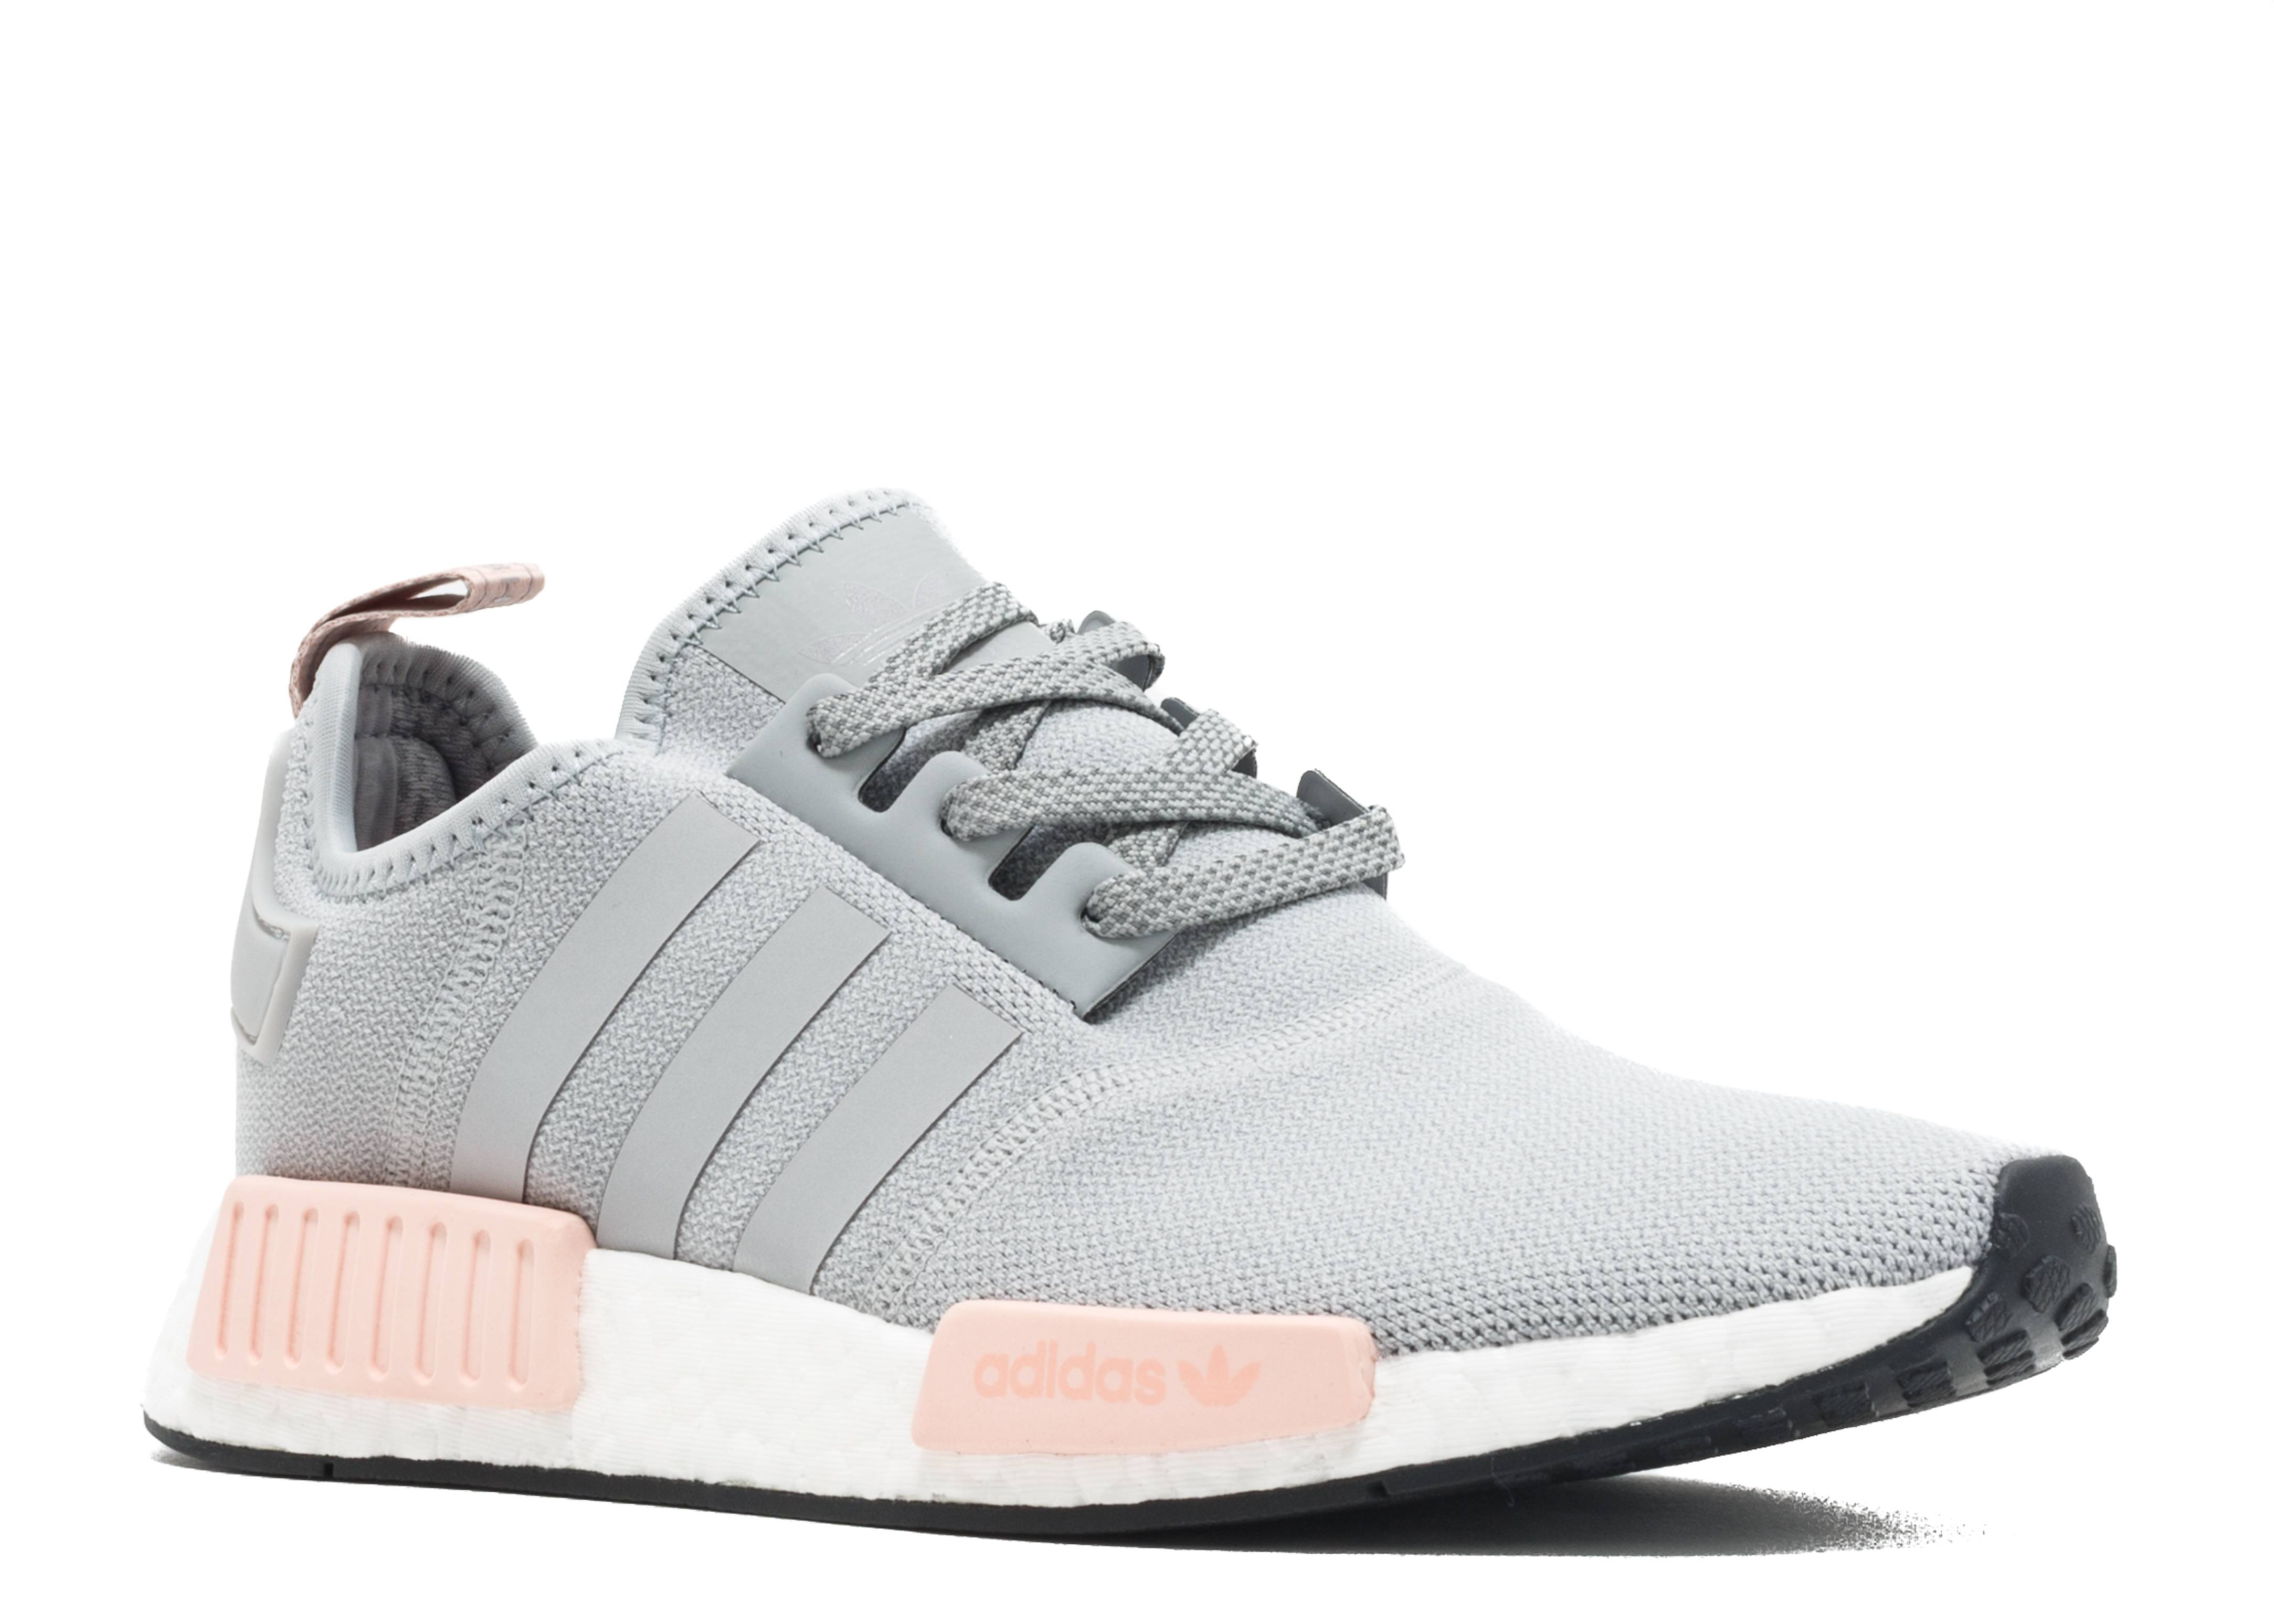 Nmd R1 Clear Onix Light Onix Vapour Pink Flight Club